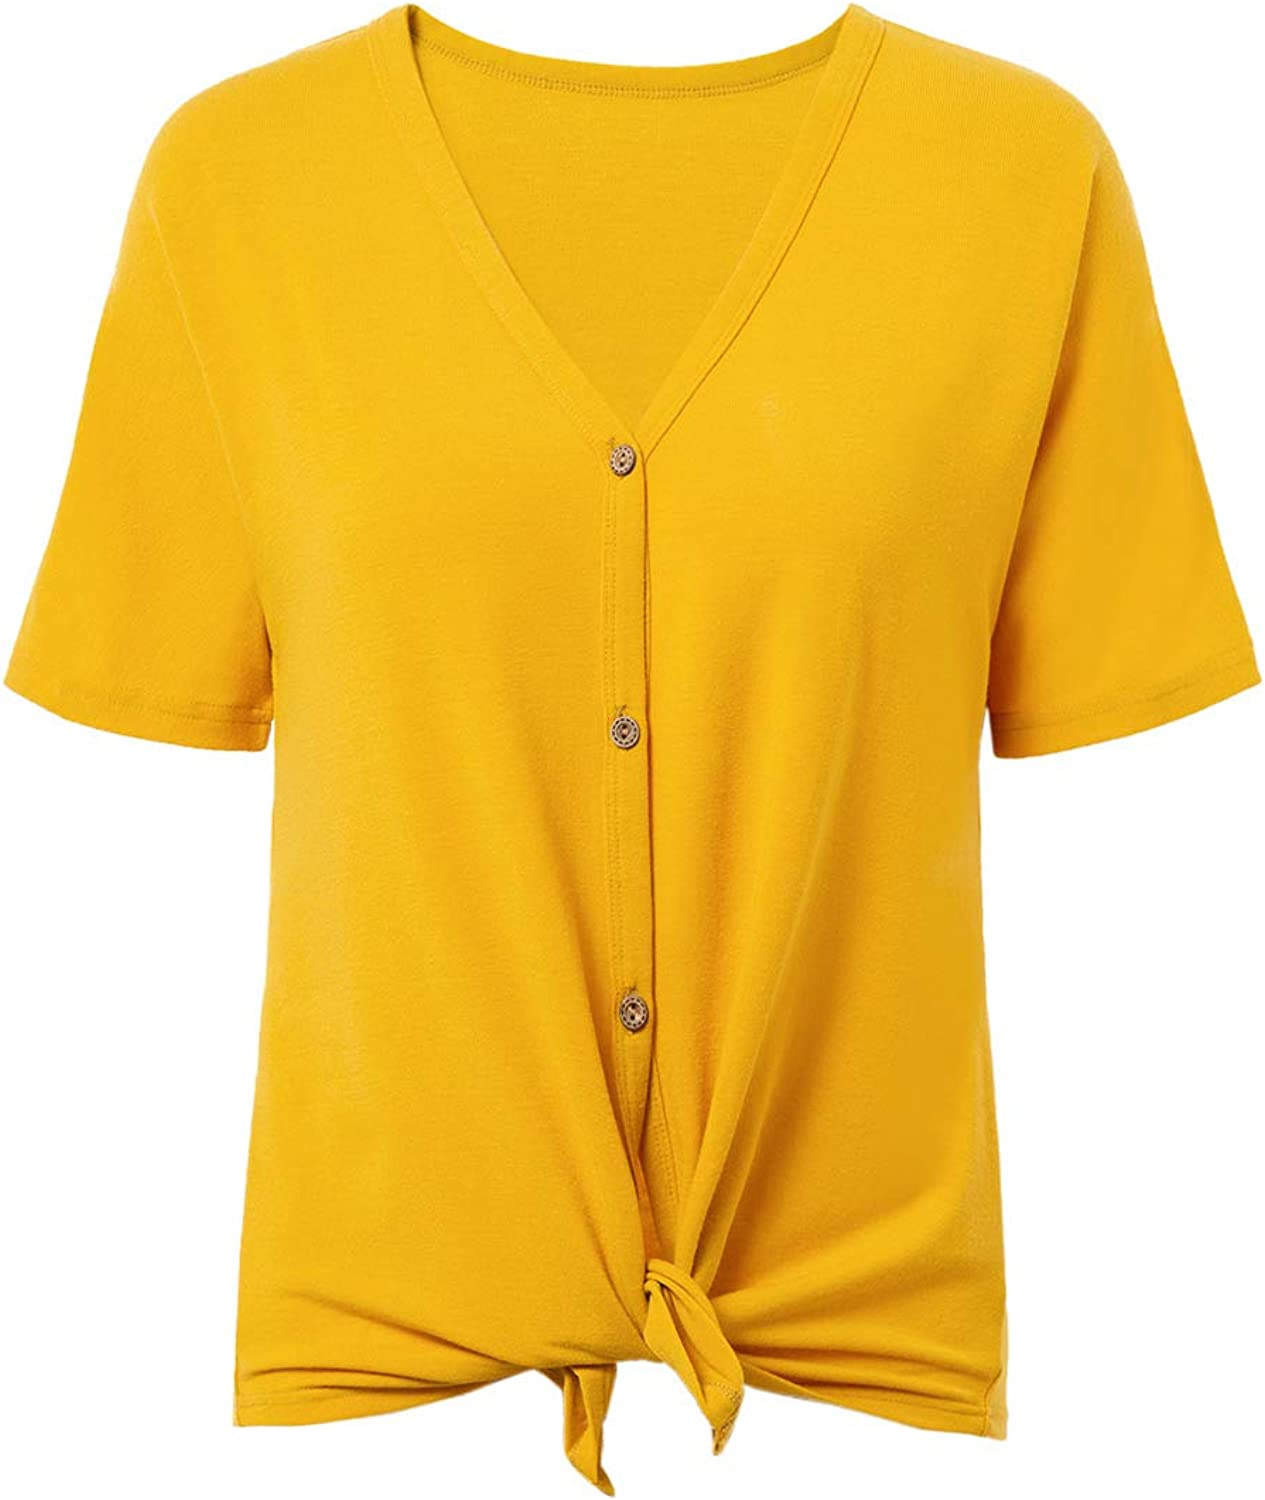 Women's Casual Short Sleeve V Neck Loose Button Down T Shirt Tops